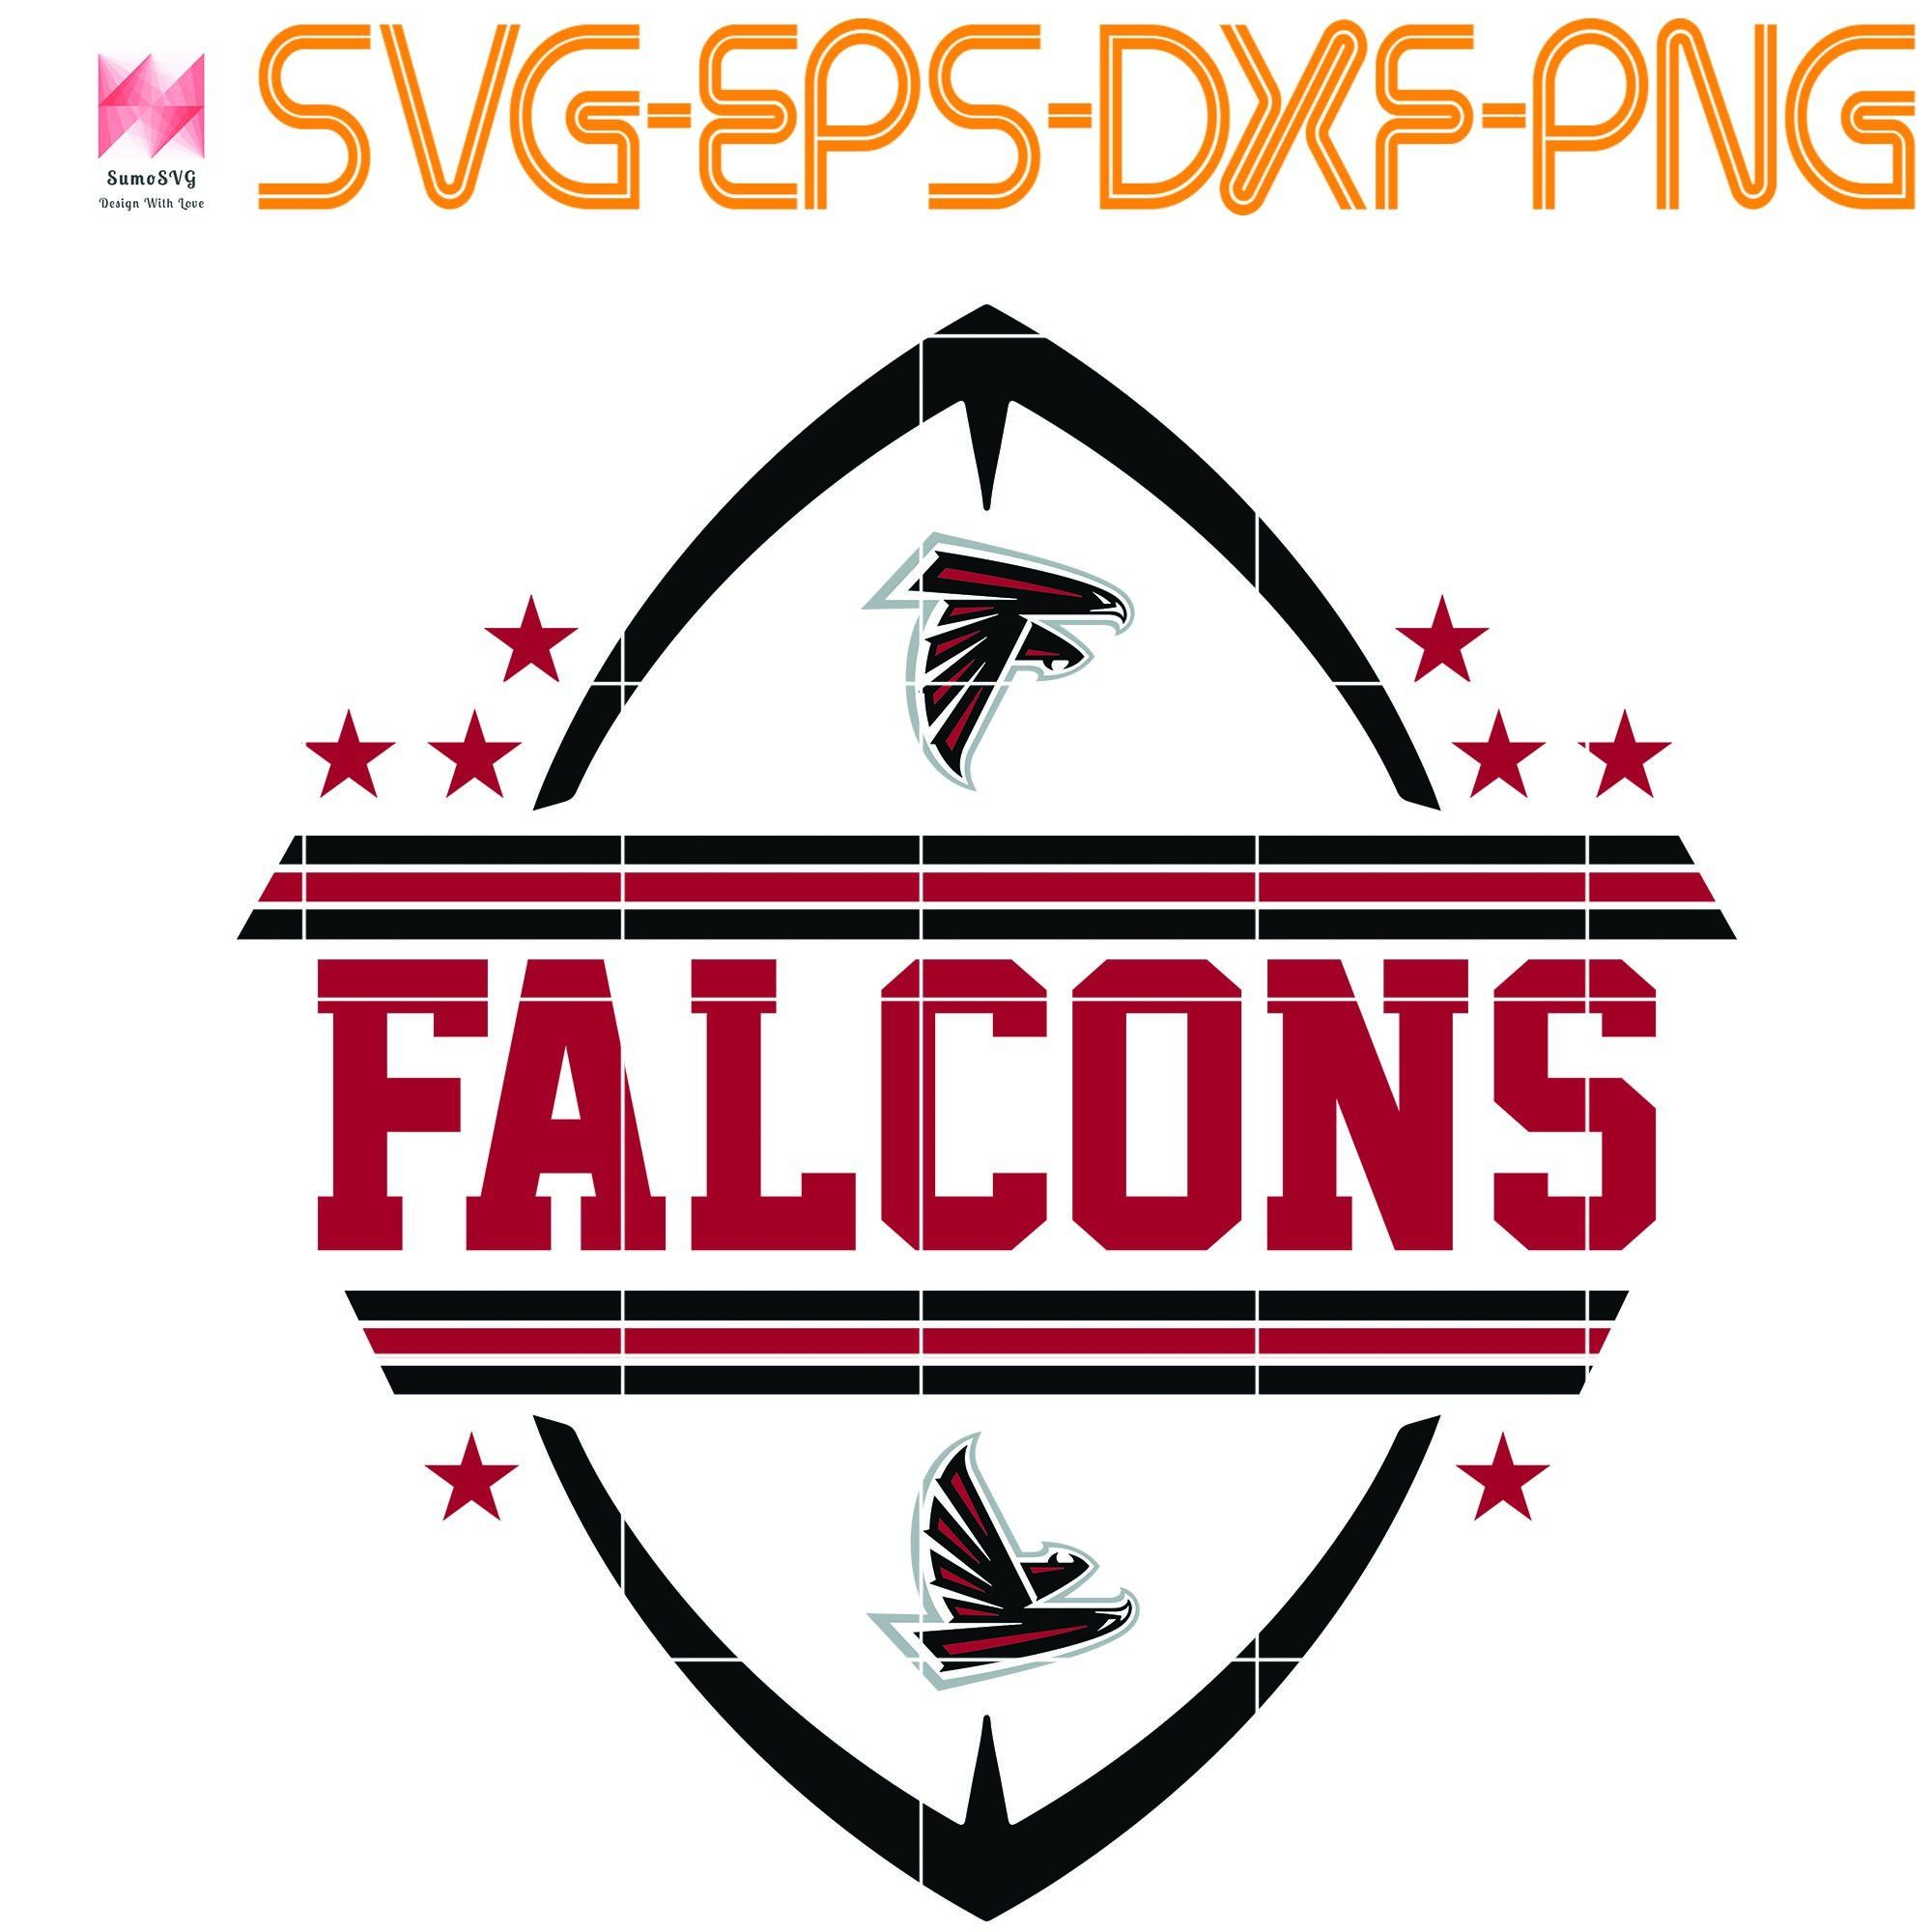 Atlanta Falcons Svg Falcons Girl Svg Falcons Svg Falcons Boy Svg Nfl Svg Football Svg Falcons Mom Svg Dna Fueled By Haters Lip Skull Svg Eps Dxf In 2020 Atlanta